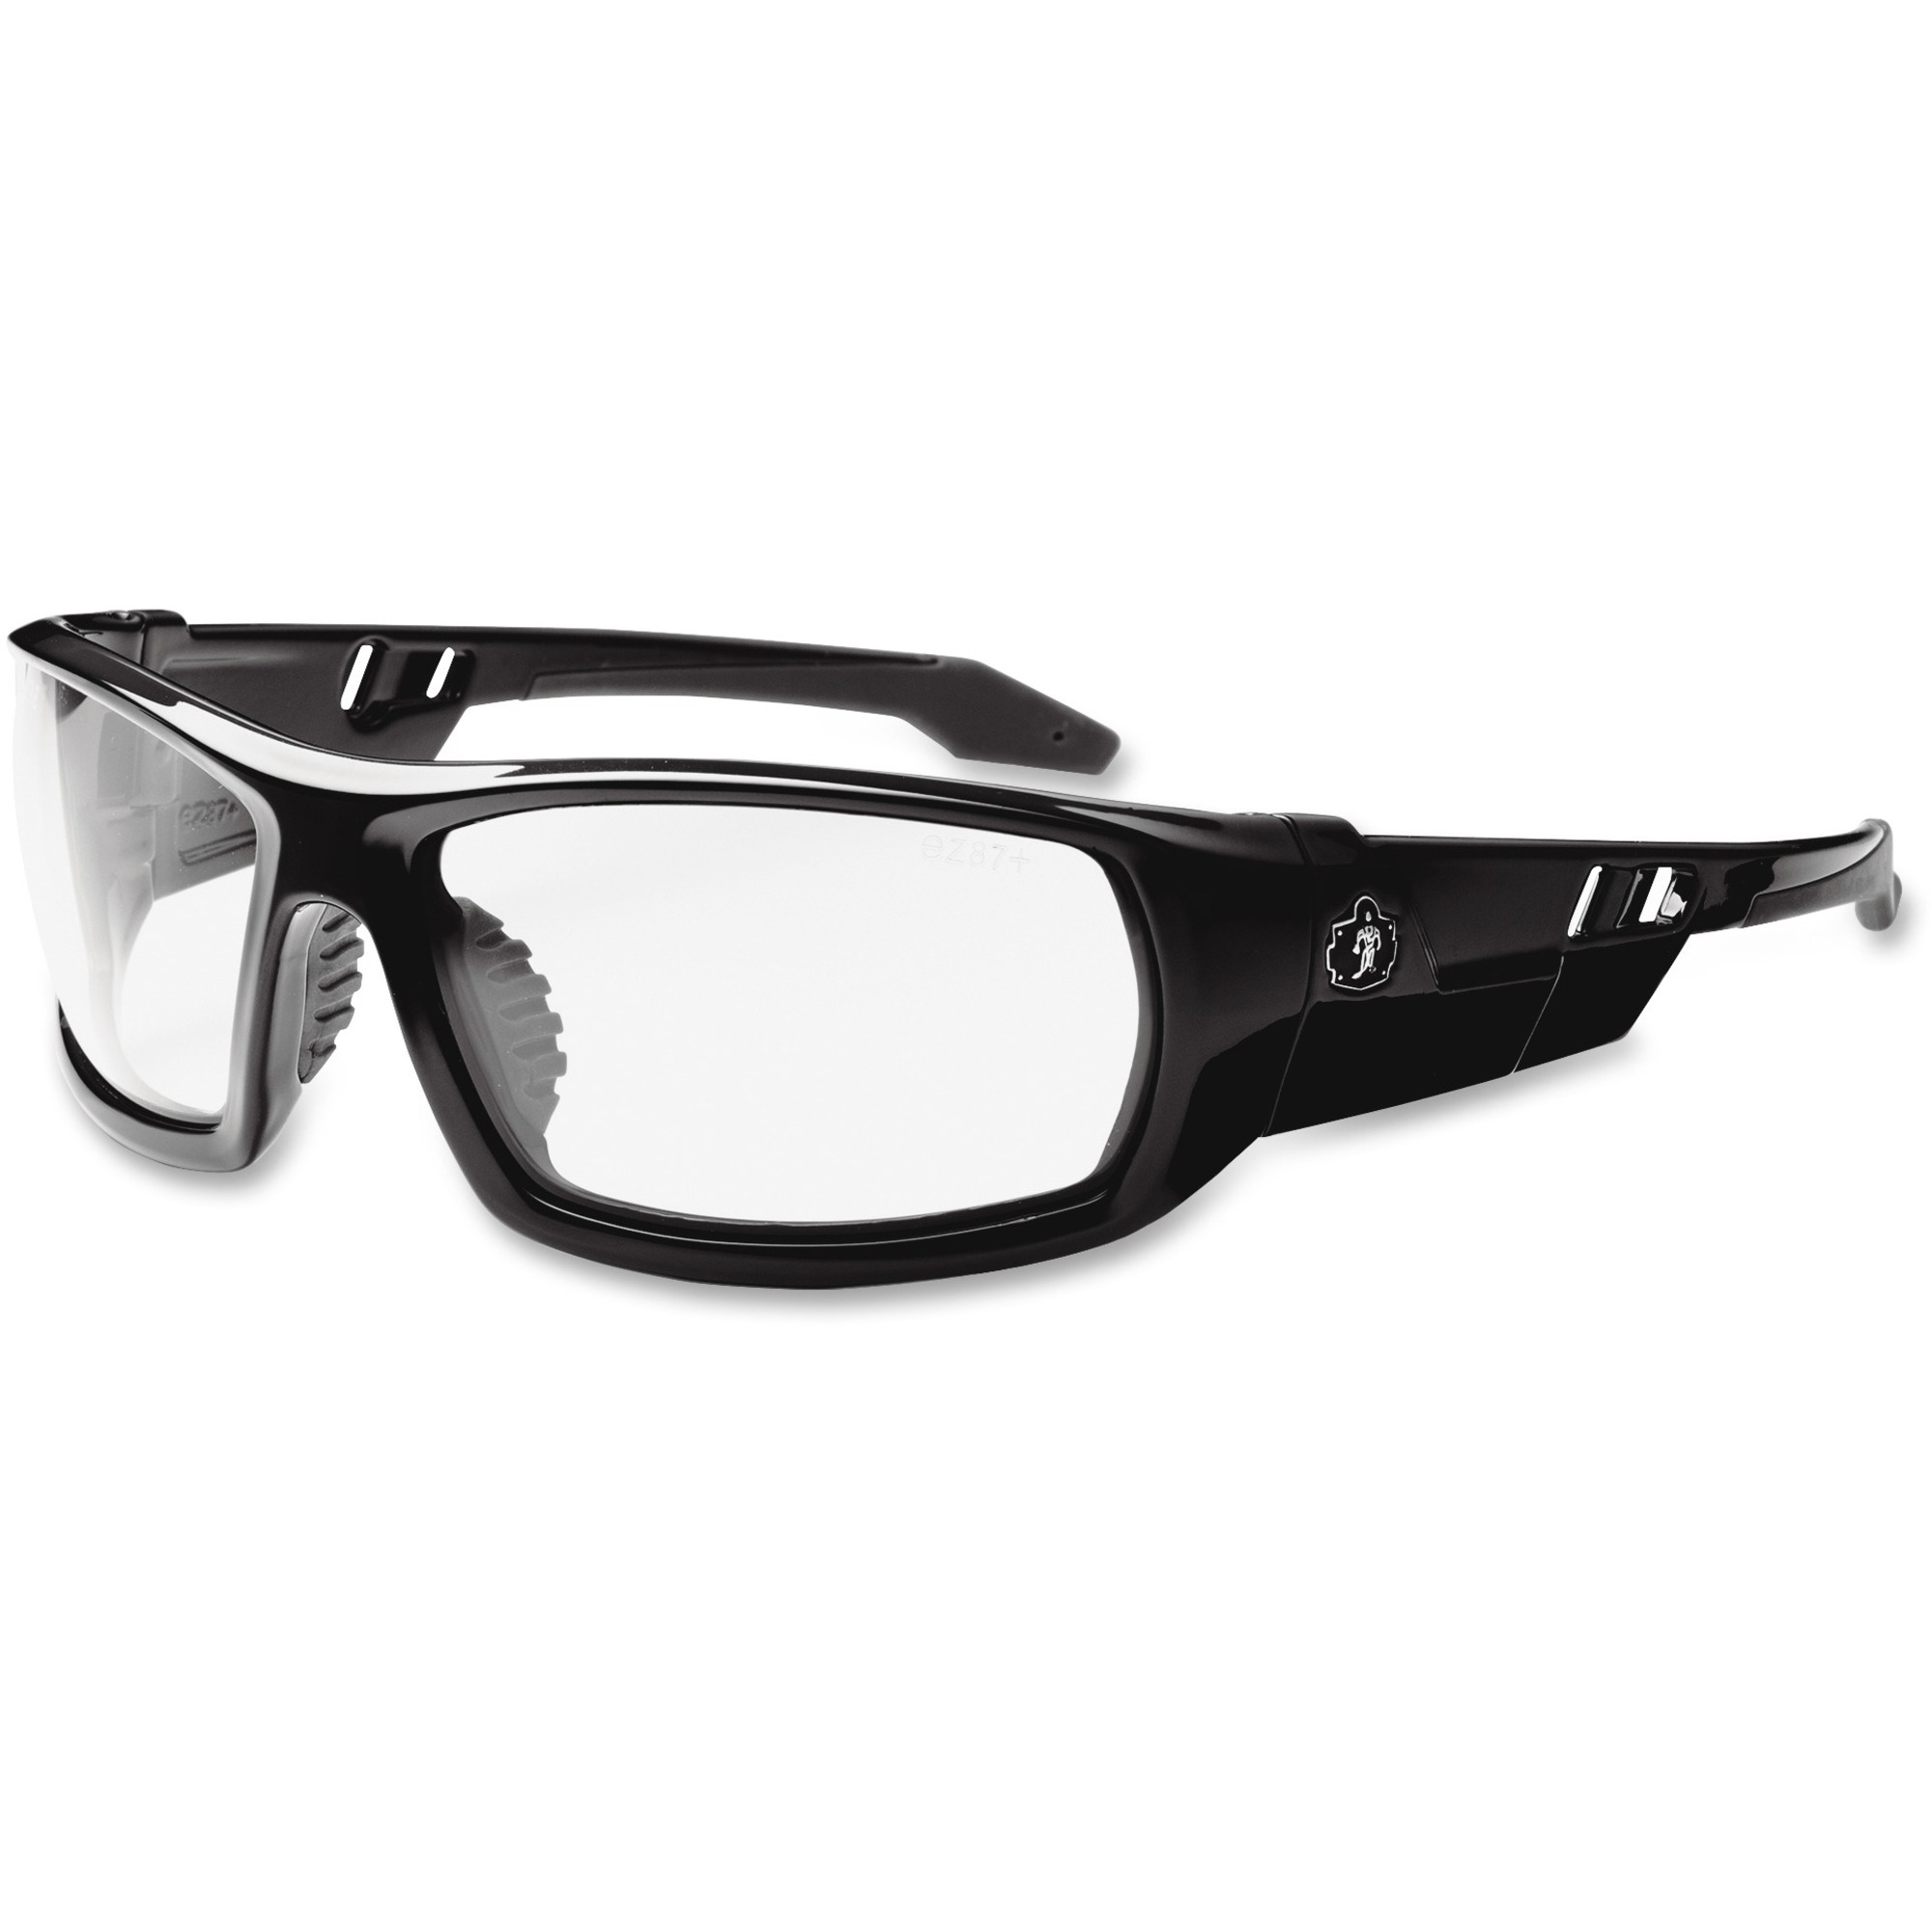 Tenacious Holdings, Inc Ergodyne Skullerz Fog-off Clear Lens Safety Glasses - Durable, Flexible, Non-slip, Scratch Resistant, Anti-fog, Perspiration Resistant - Ultraviolet Protection - Polycarbonate Lens, Nylon Frame, Polycarbonate Temple - Black - 1 Eac